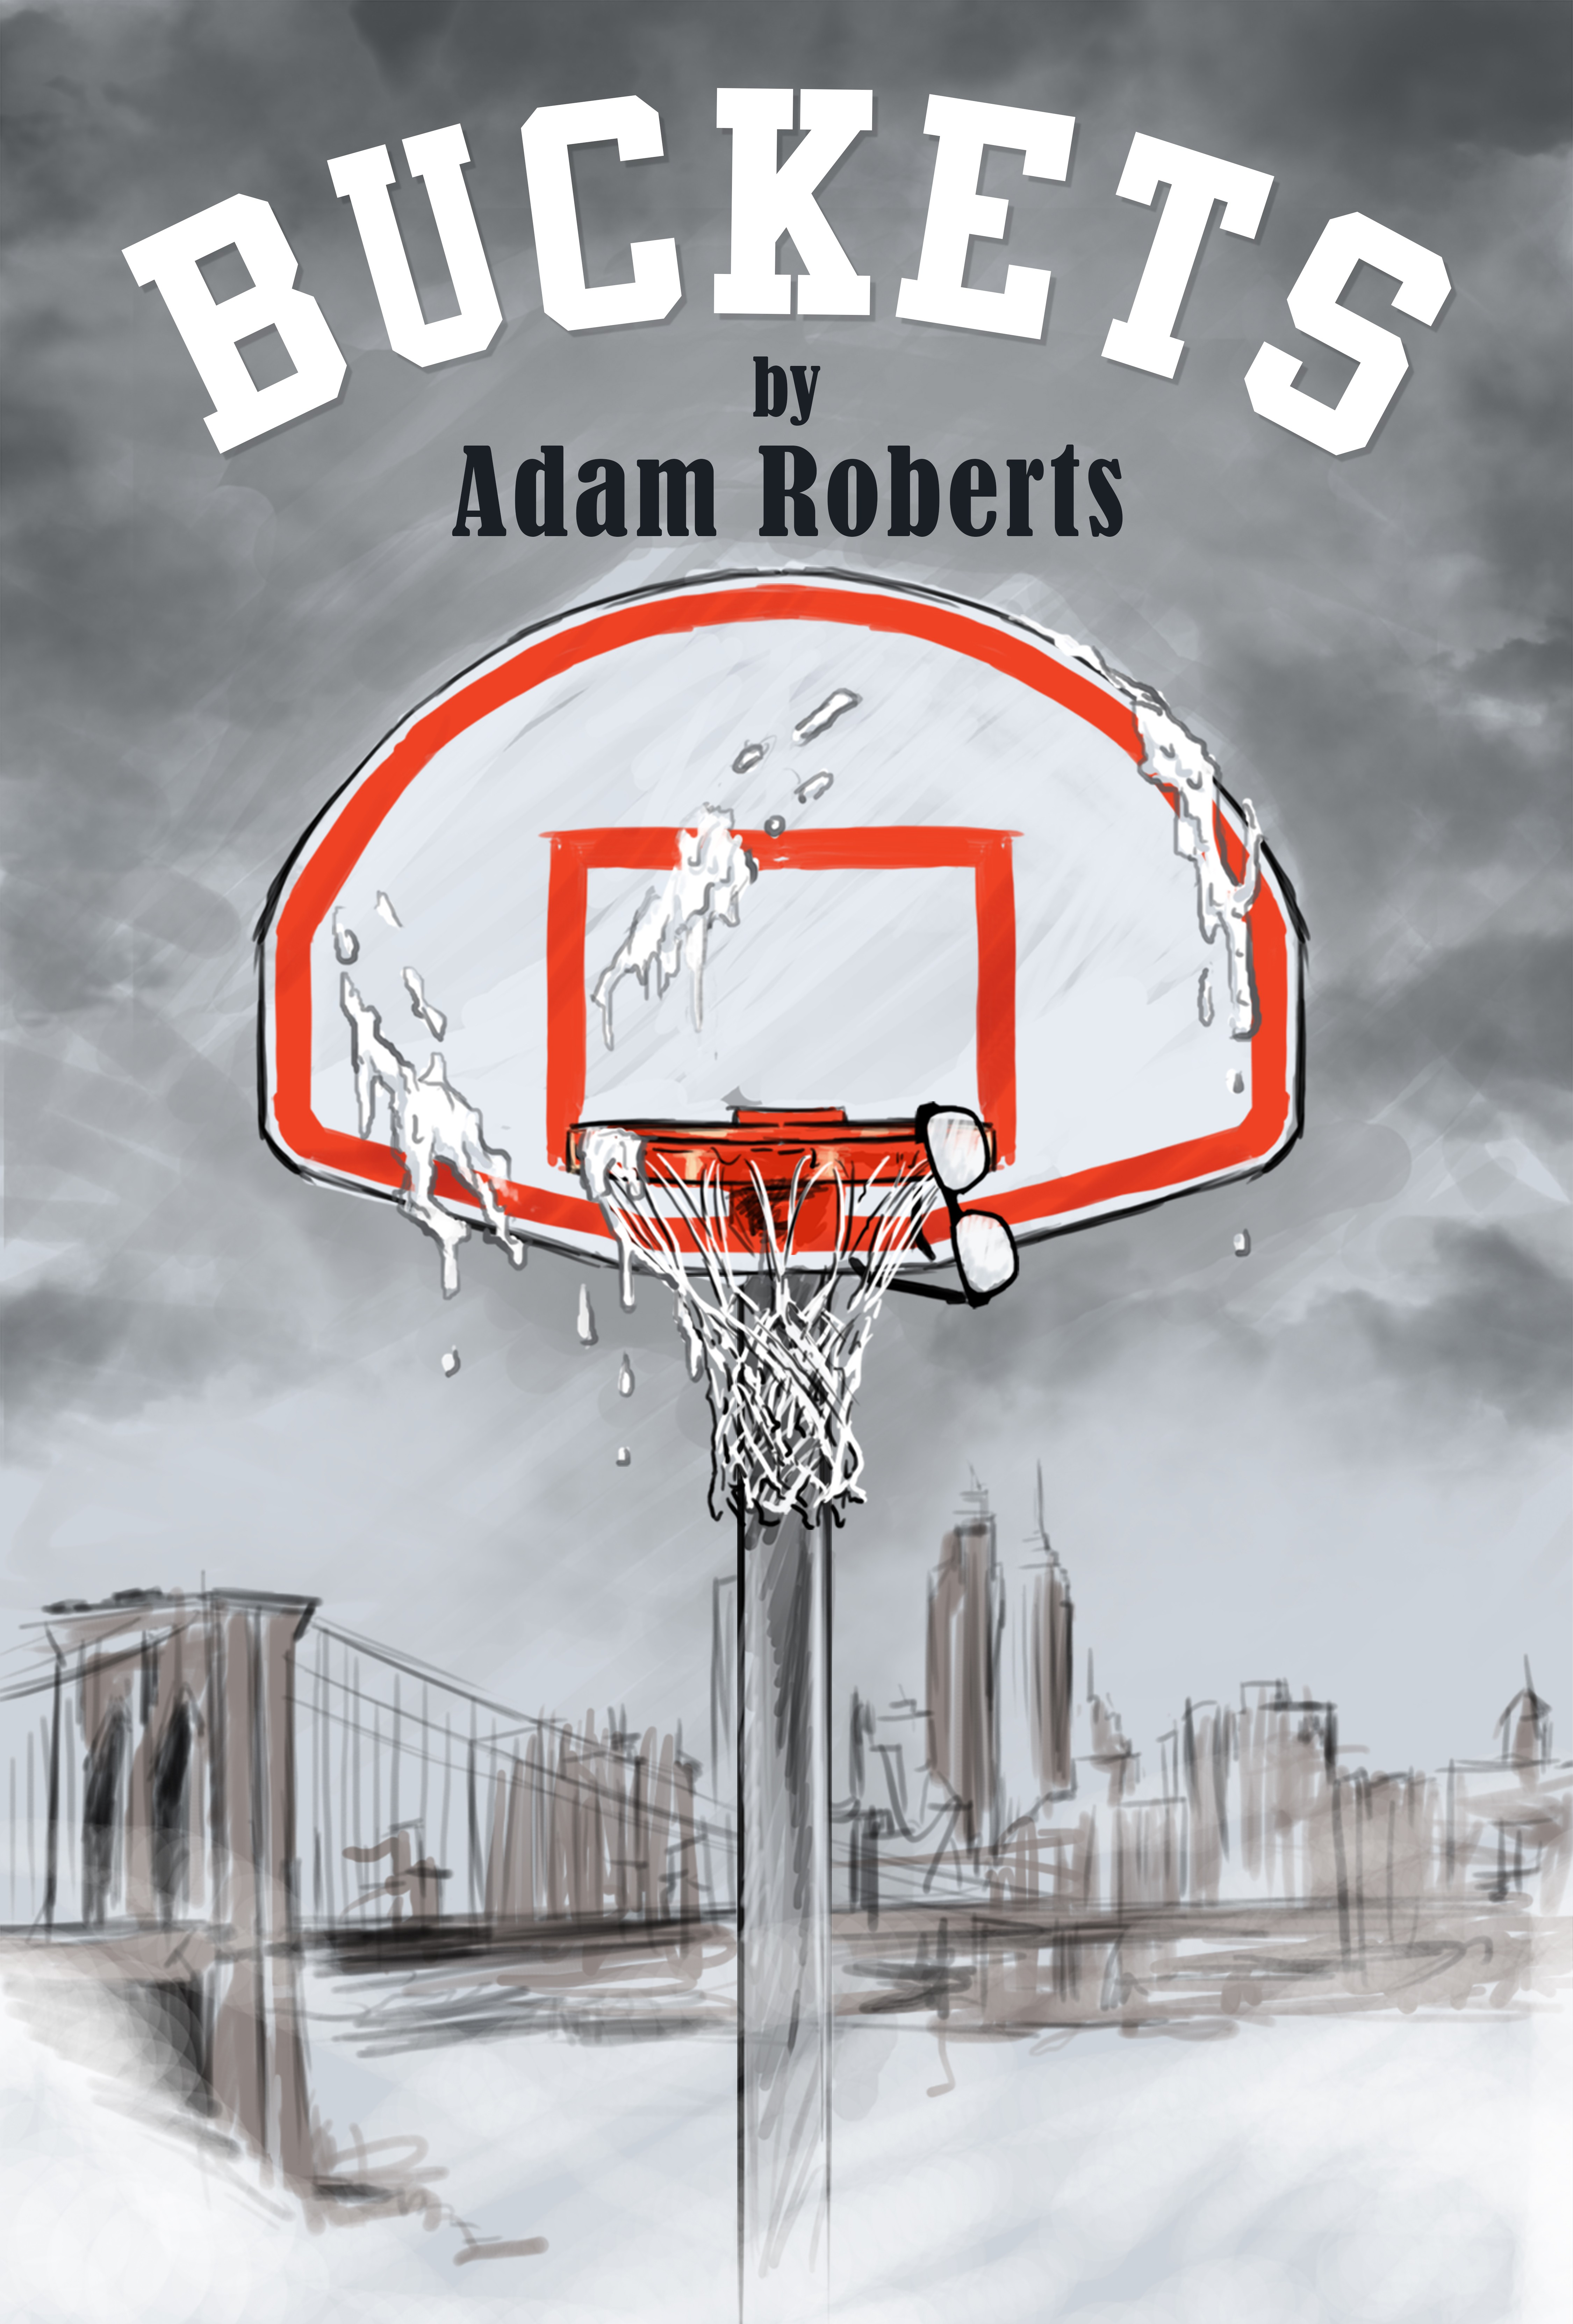 illustration or graphic design for a book cover